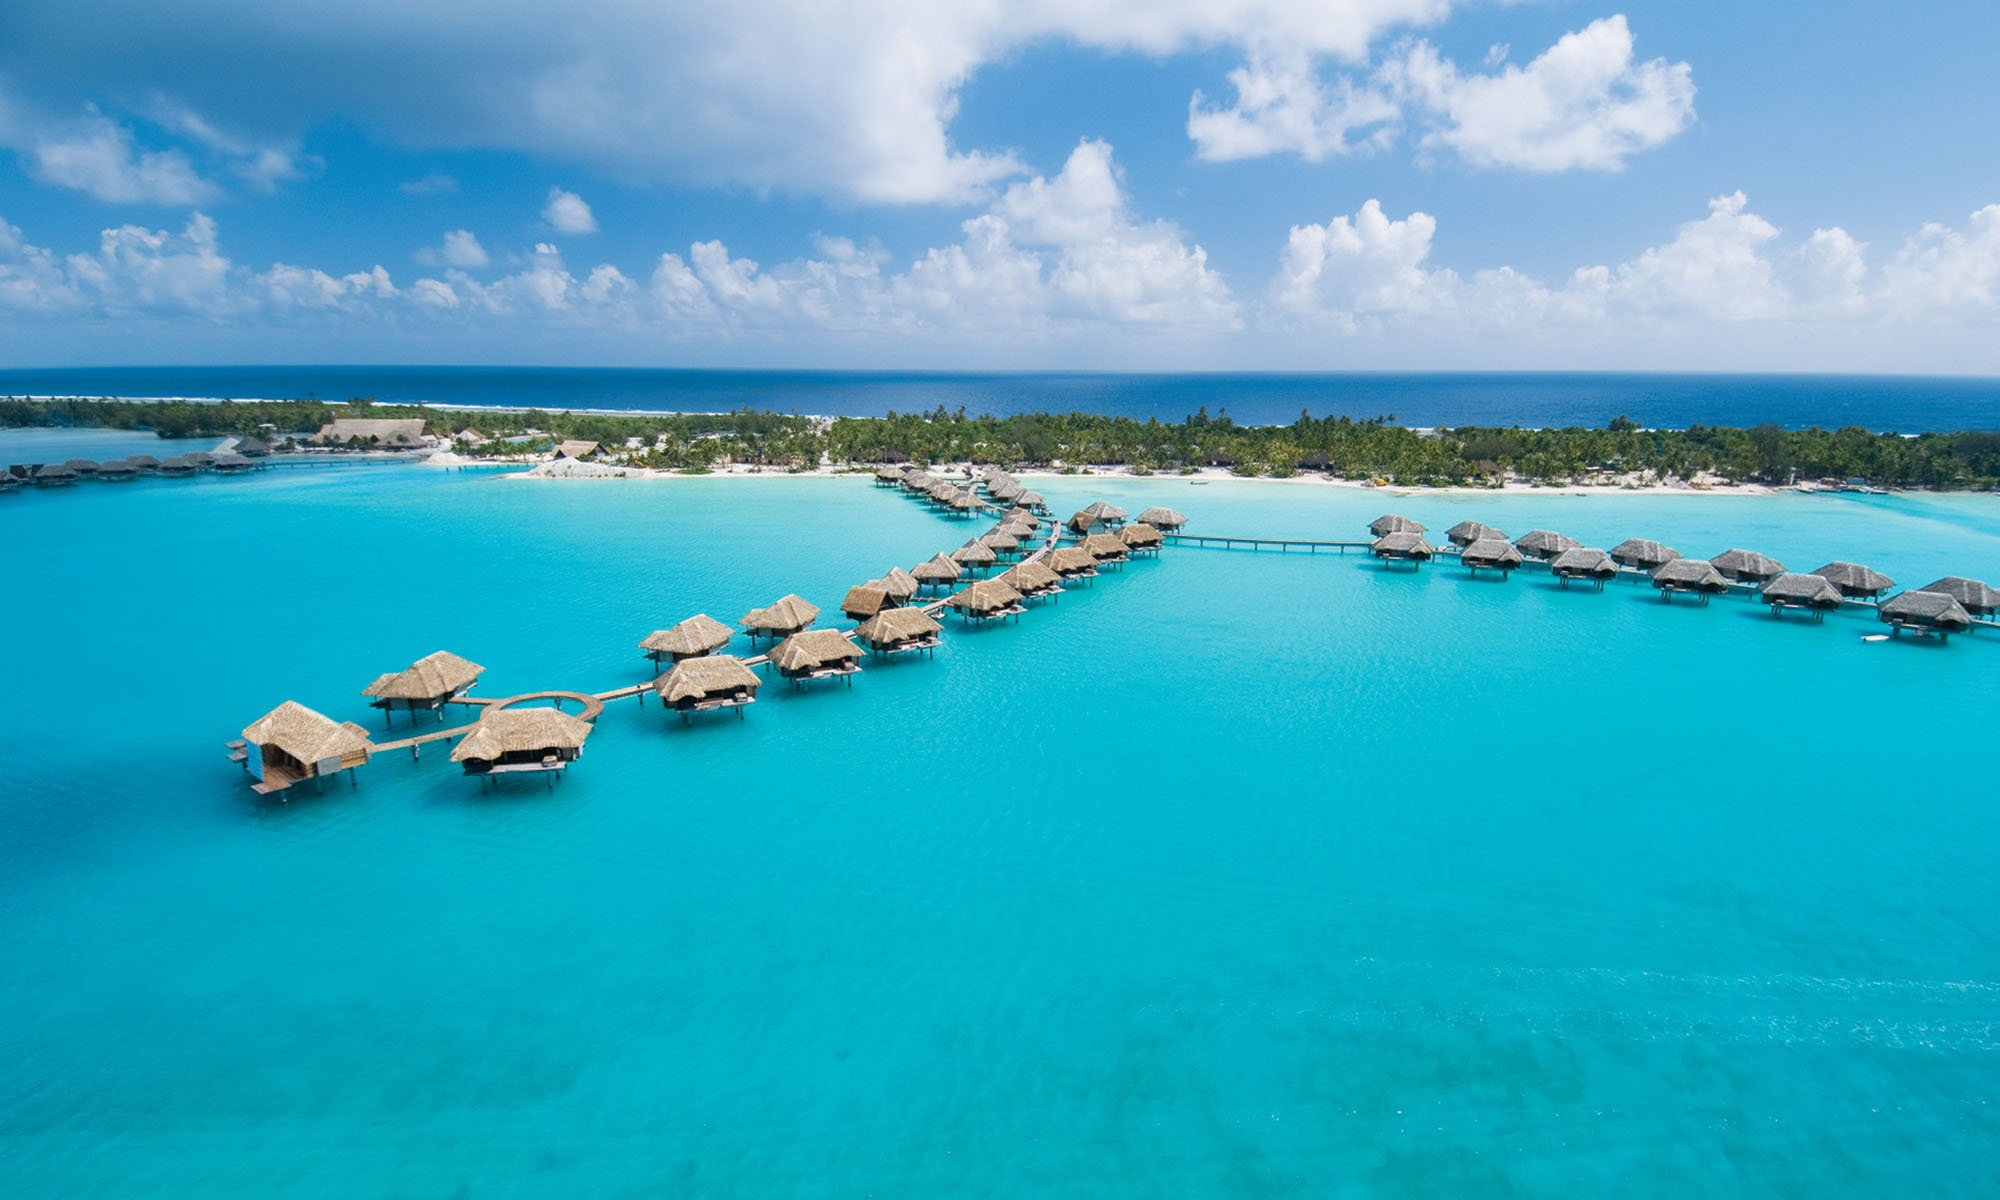 https://tahititourisme.com/wp-content/uploads/2020/08/Four-Seasons-Resort-Bora-Bora-.jpg